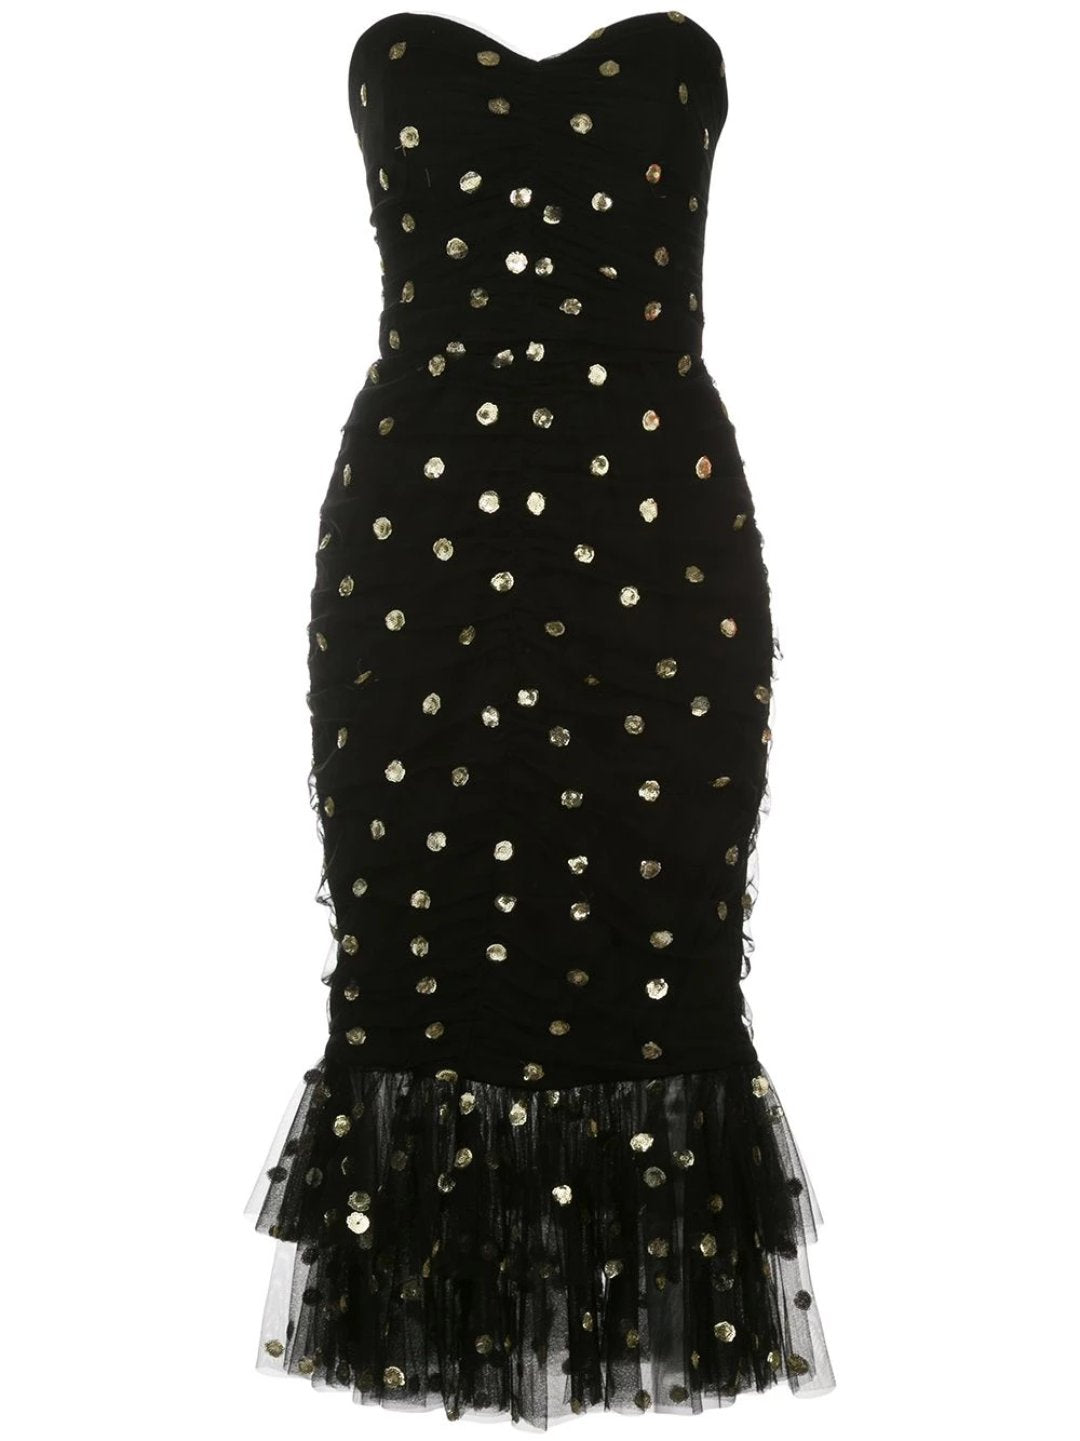 Sequin Dot Tulle Cocktail Dress